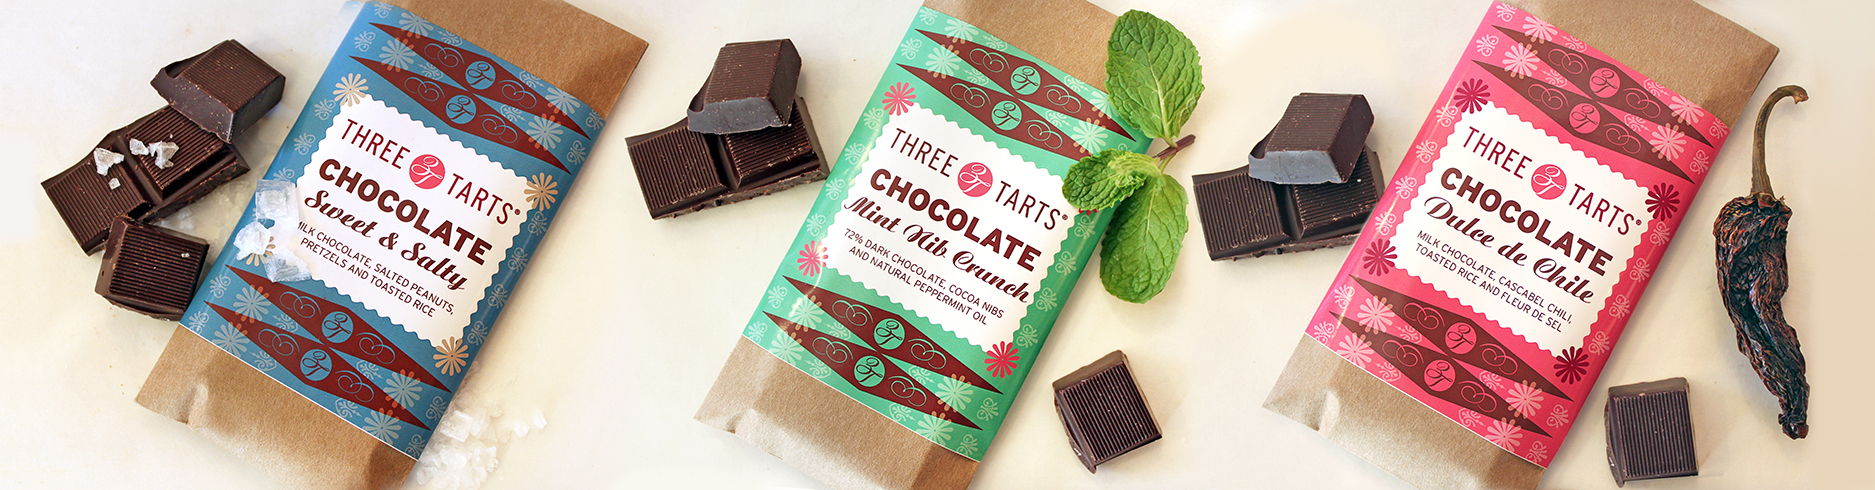 Three Tarts chocolate bar package design